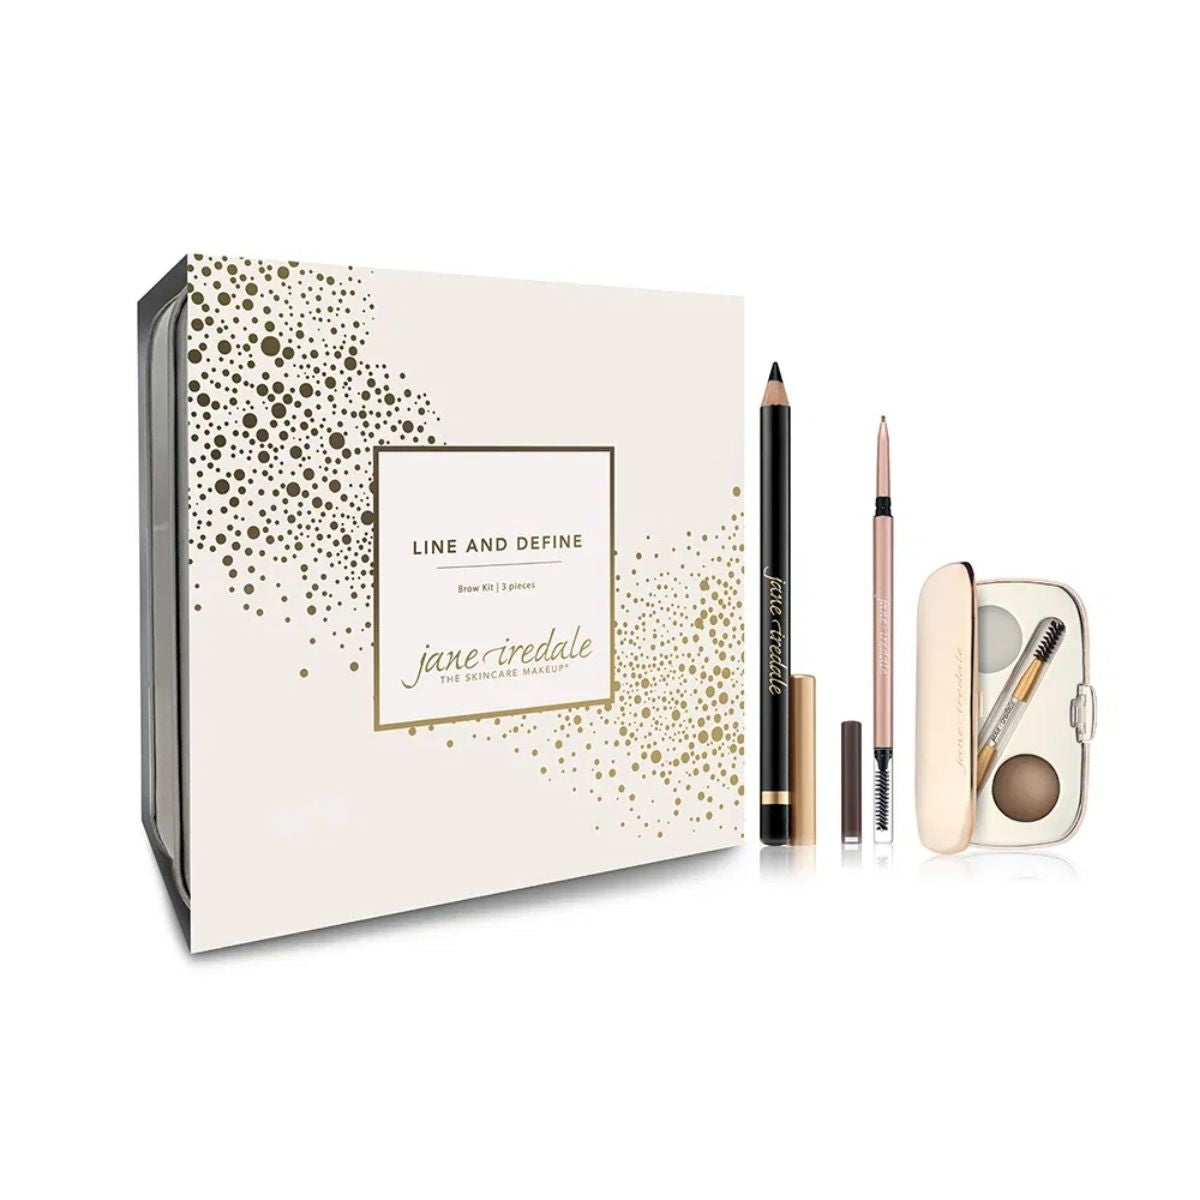 Jane Iredale  Line & Define Brow Kit Medium Gift Set